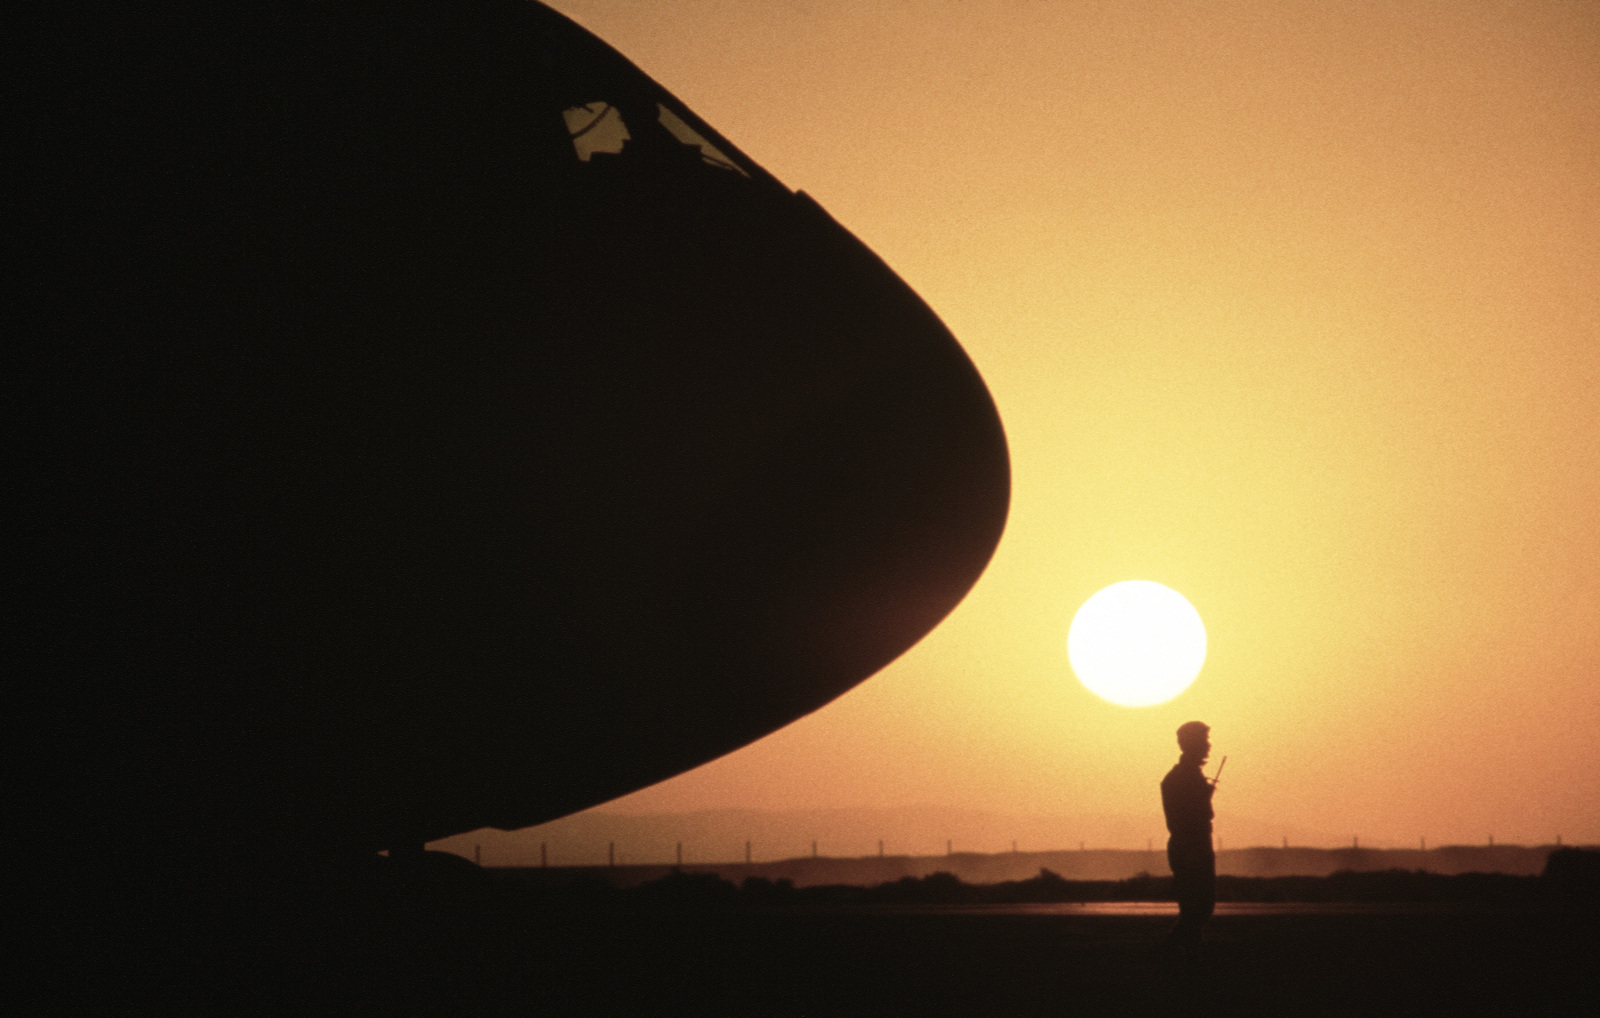 A member of the Jordanian military is silhouetted by the setting sun as he guards a 437th Military Airlift Wing C-141B Starlifter aircraft during Exercise SHADOW HAWK'87, a phase of BRIGHT STAR'87.  The US Central Command/Joint Chiefs of STAFF exercise pr